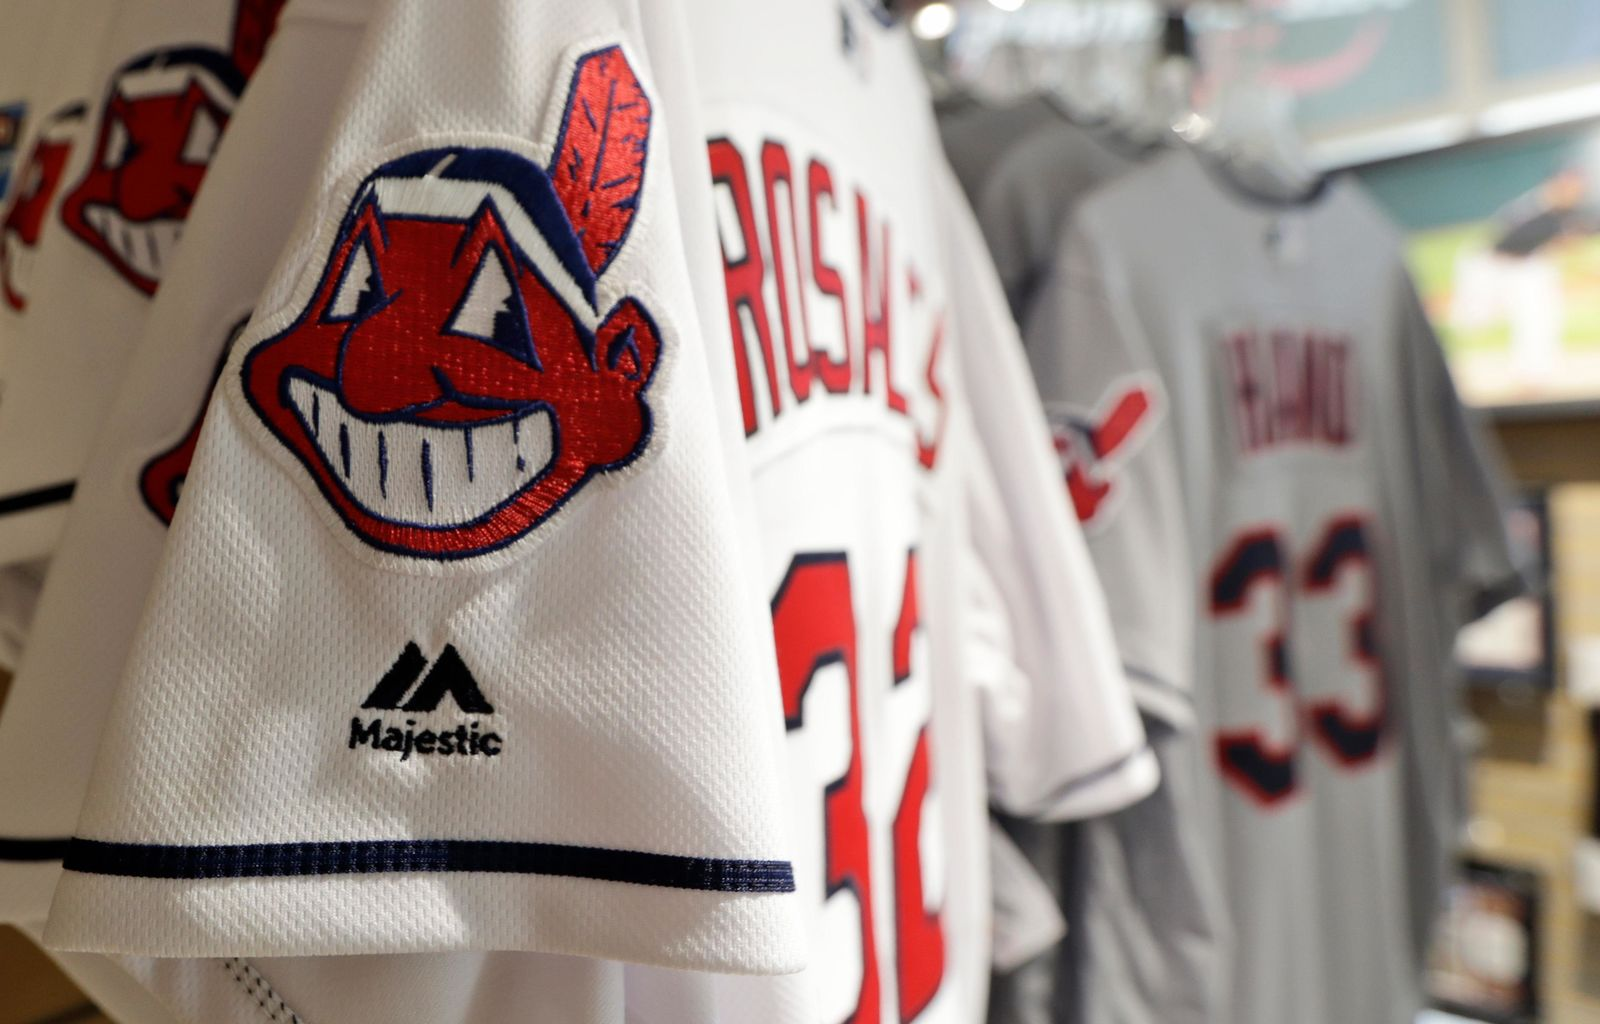 Jersey's with Chief Wahoo are displayed in the team shop, Wednesday, July 3, 2019, in Cleveland. While Major League Baseball and the Indians mutually agreed in 2018 to completely remove him from the team's jerseys and caps as well as banners and signage in the ballpark starting this season, when Cleveland hosts the All-Star Game for the sixth time, the red-faced, toothy caricature remains omnipresent across town.(AP Photo/Tony Dejak)